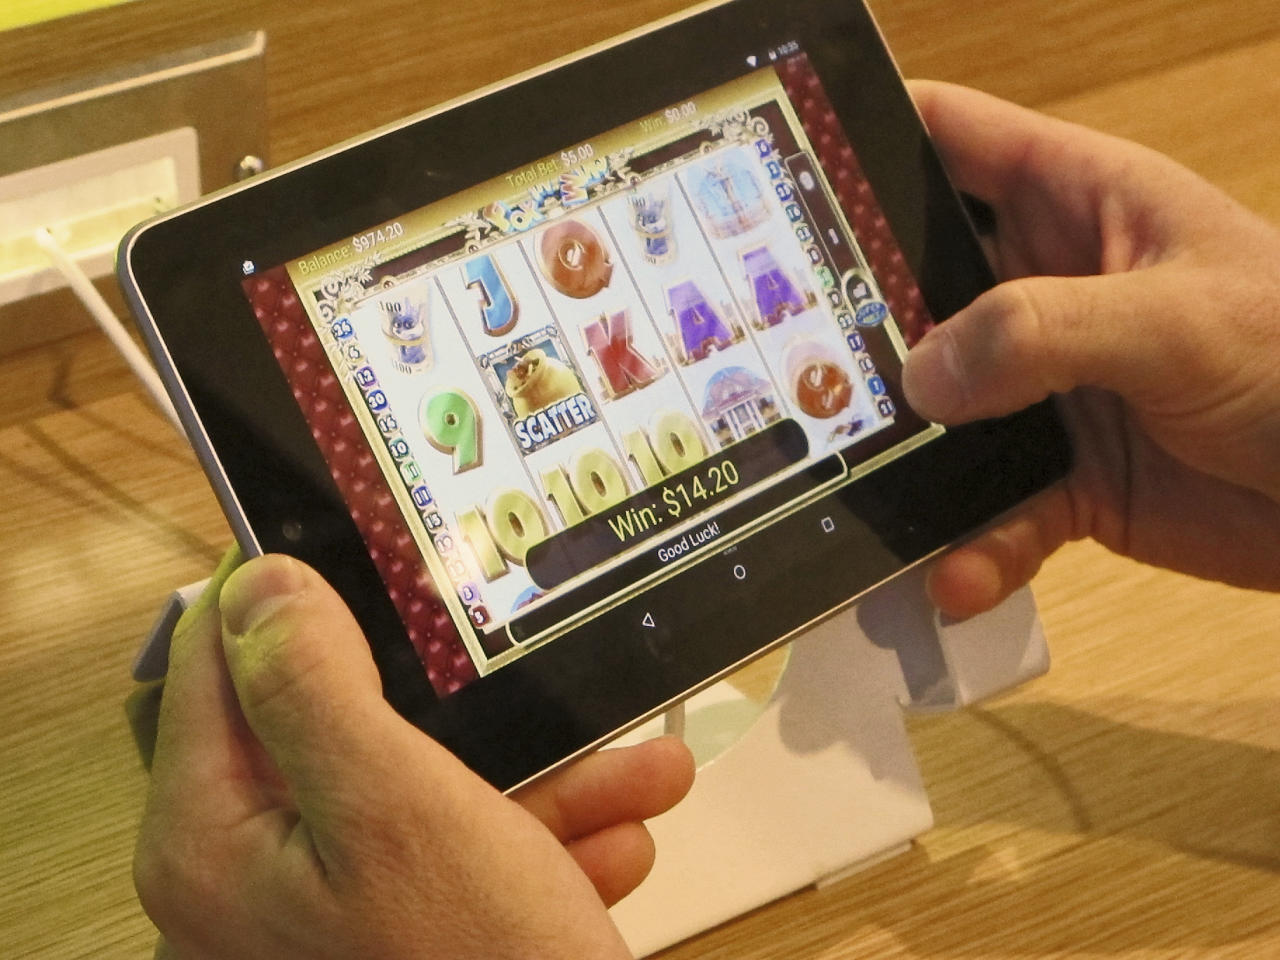 FILE – In this April 15, 2015, file photo, an employee at Resorts Casino Hotel tries a touchscreen tablet device the day before the opening of the casino's internet gambling lounge in Atlantic City, N.J. The U.S. Supreme Court is set to hear arguments Dec. 4, 2017, as the state of New Jersey challenges a 1992 law forbidding state-authorized sports gambling in all but four states that met a 1991 deadline to legalize it: Delaware, Montana, Nevada and Oregon. (AP Photo/Wayne Parry, File)